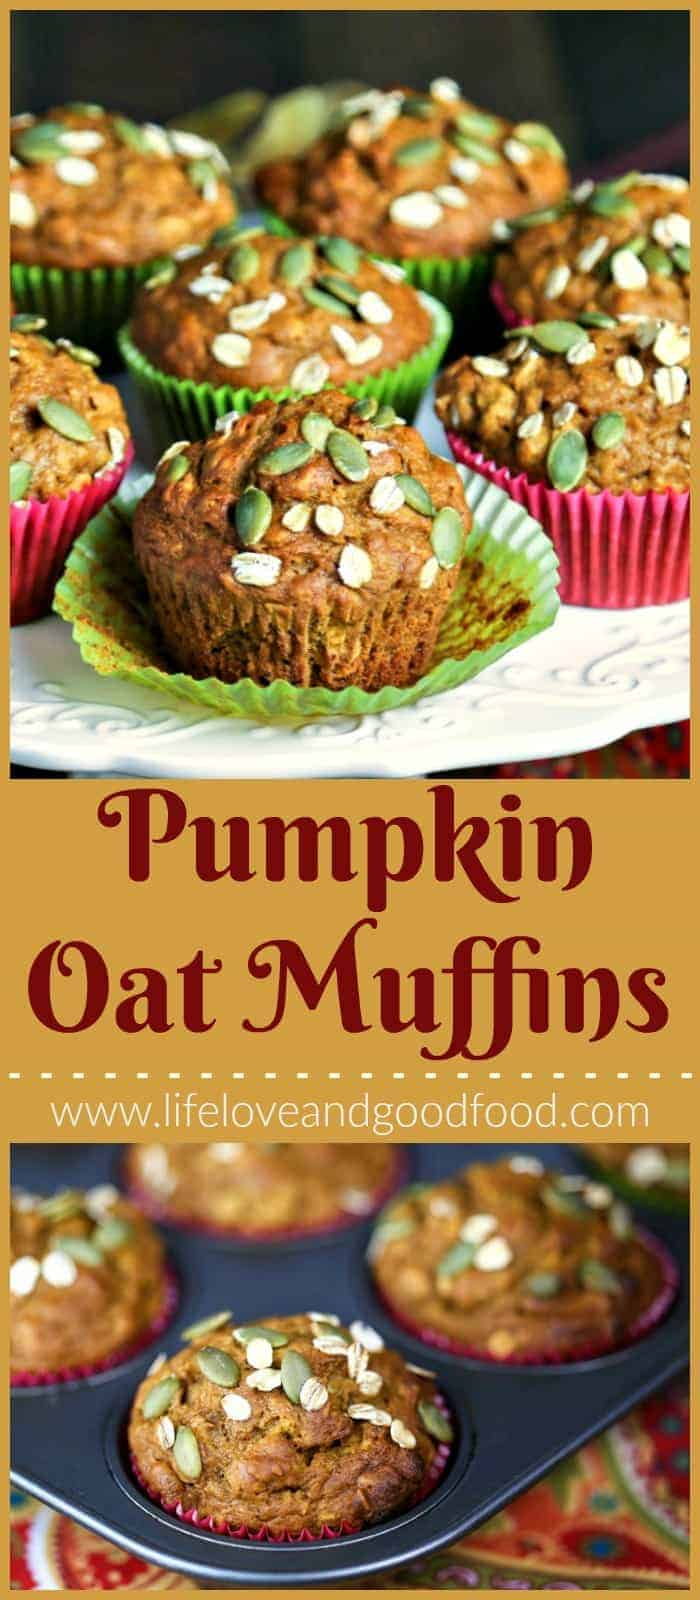 Make these Pumpkin Oat Muffins with whole wheat flour for a healthier, whole grain muffin sweetened with dark brown sugar and maple syrup.